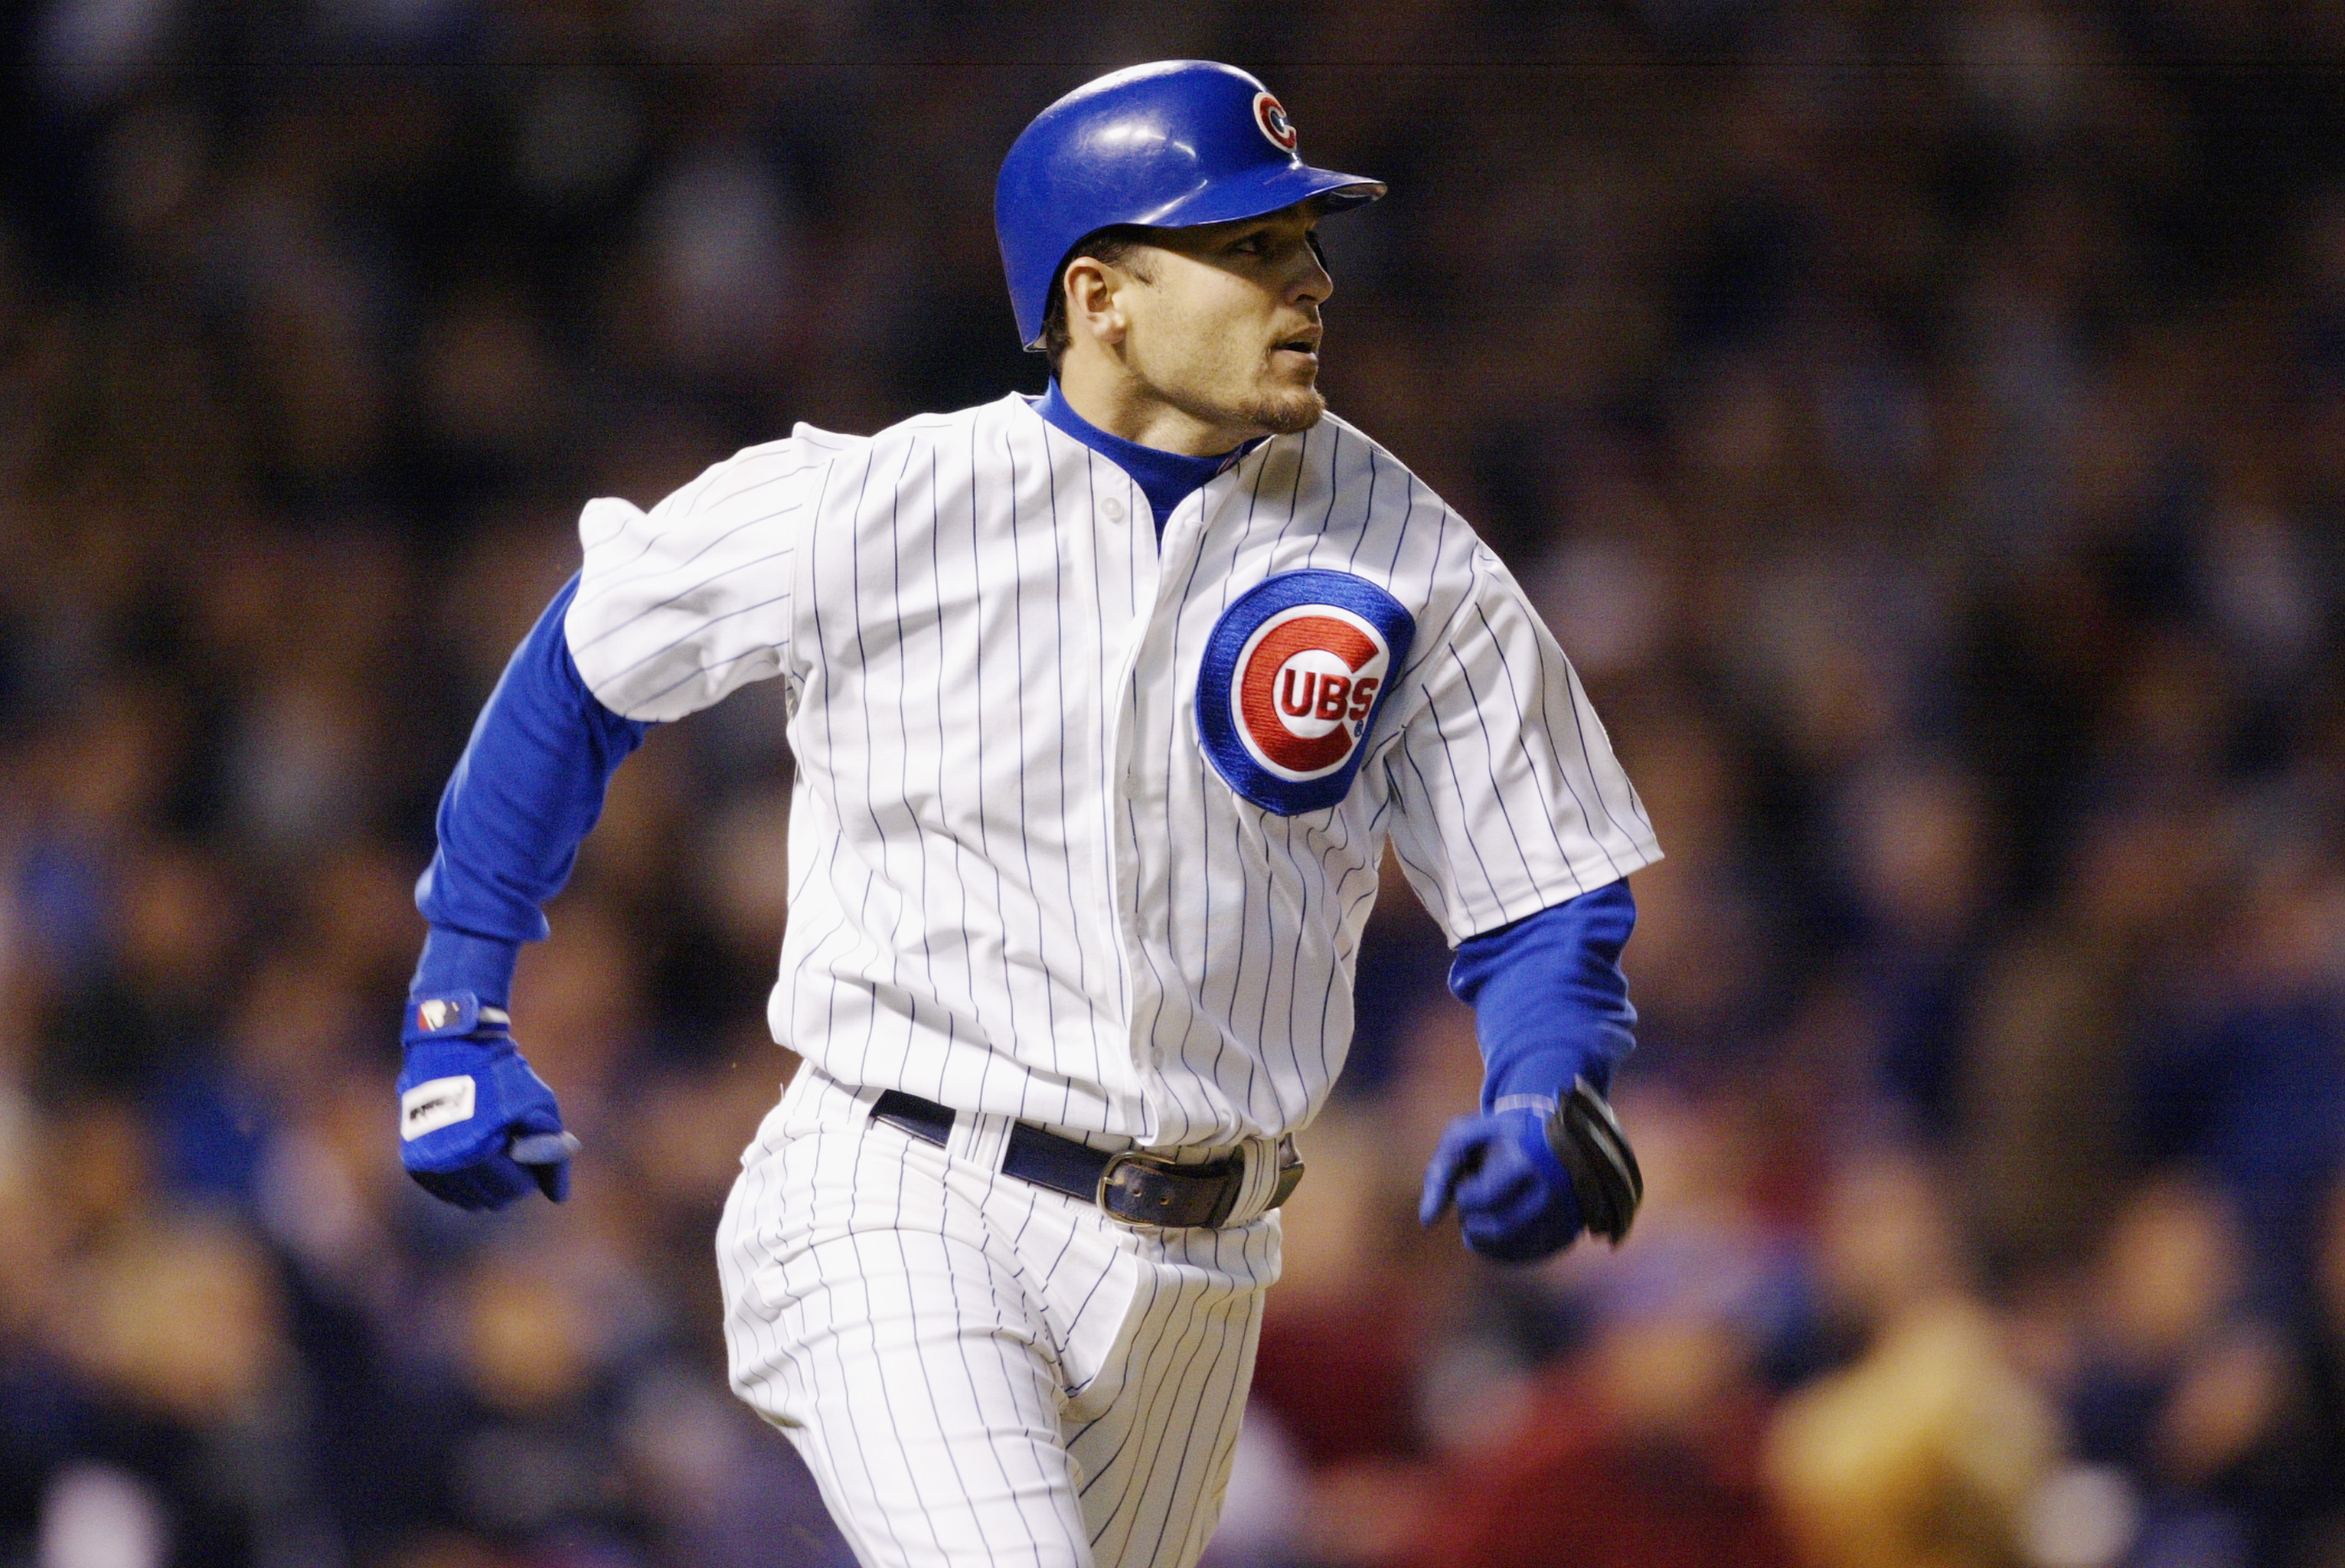 CHICAGO - OCTOBER 15:  Shortstop Alex Gonzalez #8 of the Chicago Cubs runs during game seven of the National League Championship Series against the Florida Marlins on October 15, 2003 at Wrigley Field in Chicago, Illinois. The Marlins won 9-6. (Photo by B